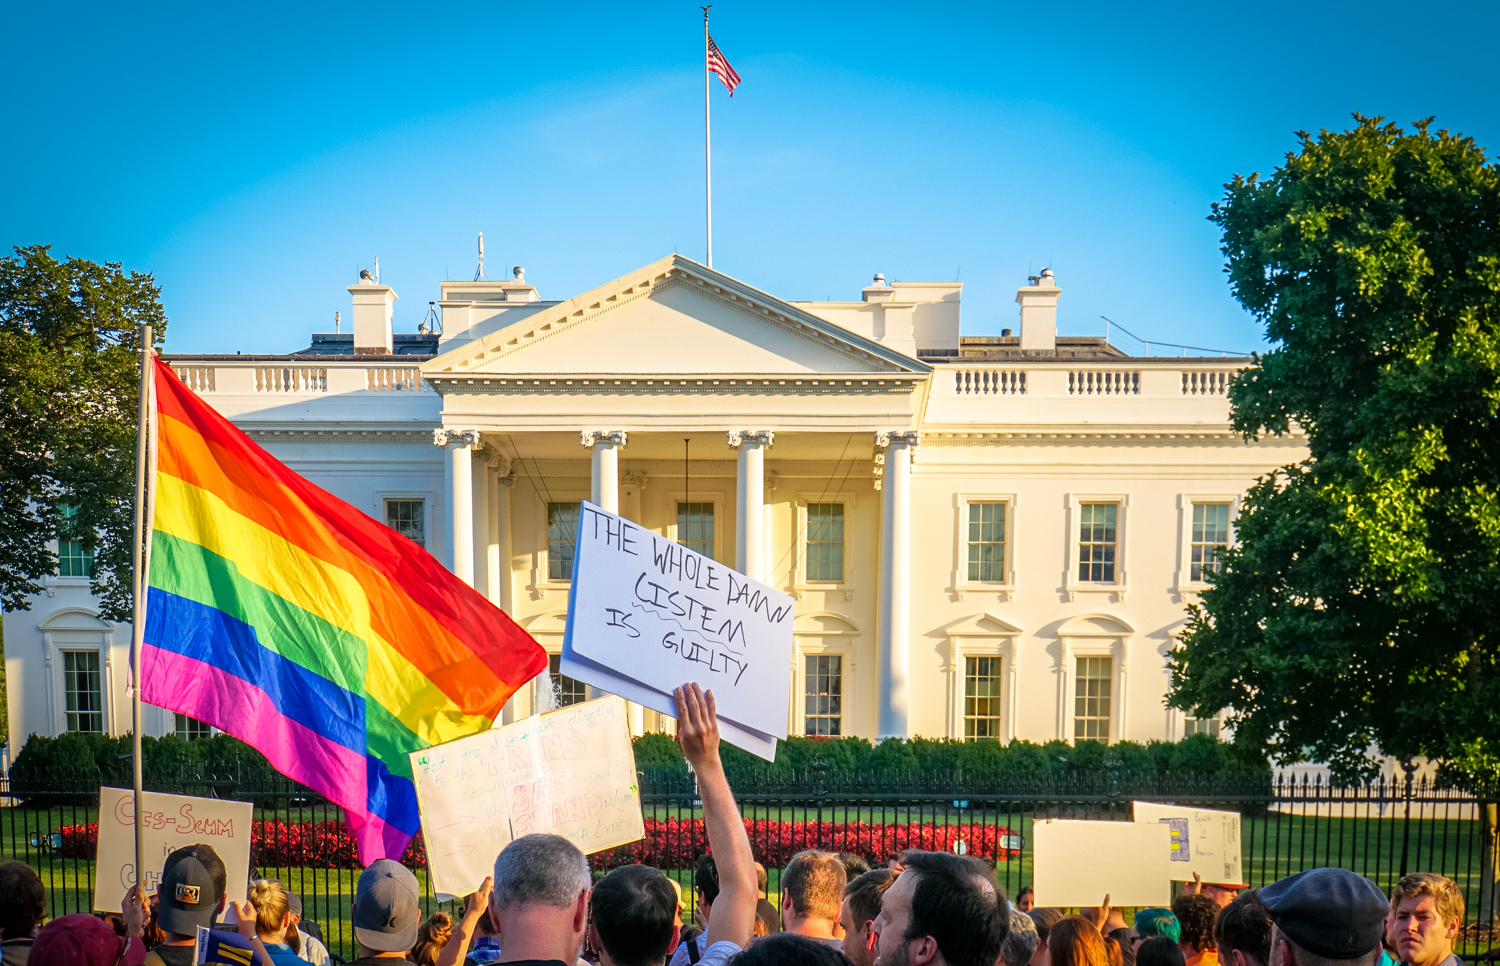 Protesters gathered in front of the White House after Trump's proposed military ban against transgender people in the summer of 2017.